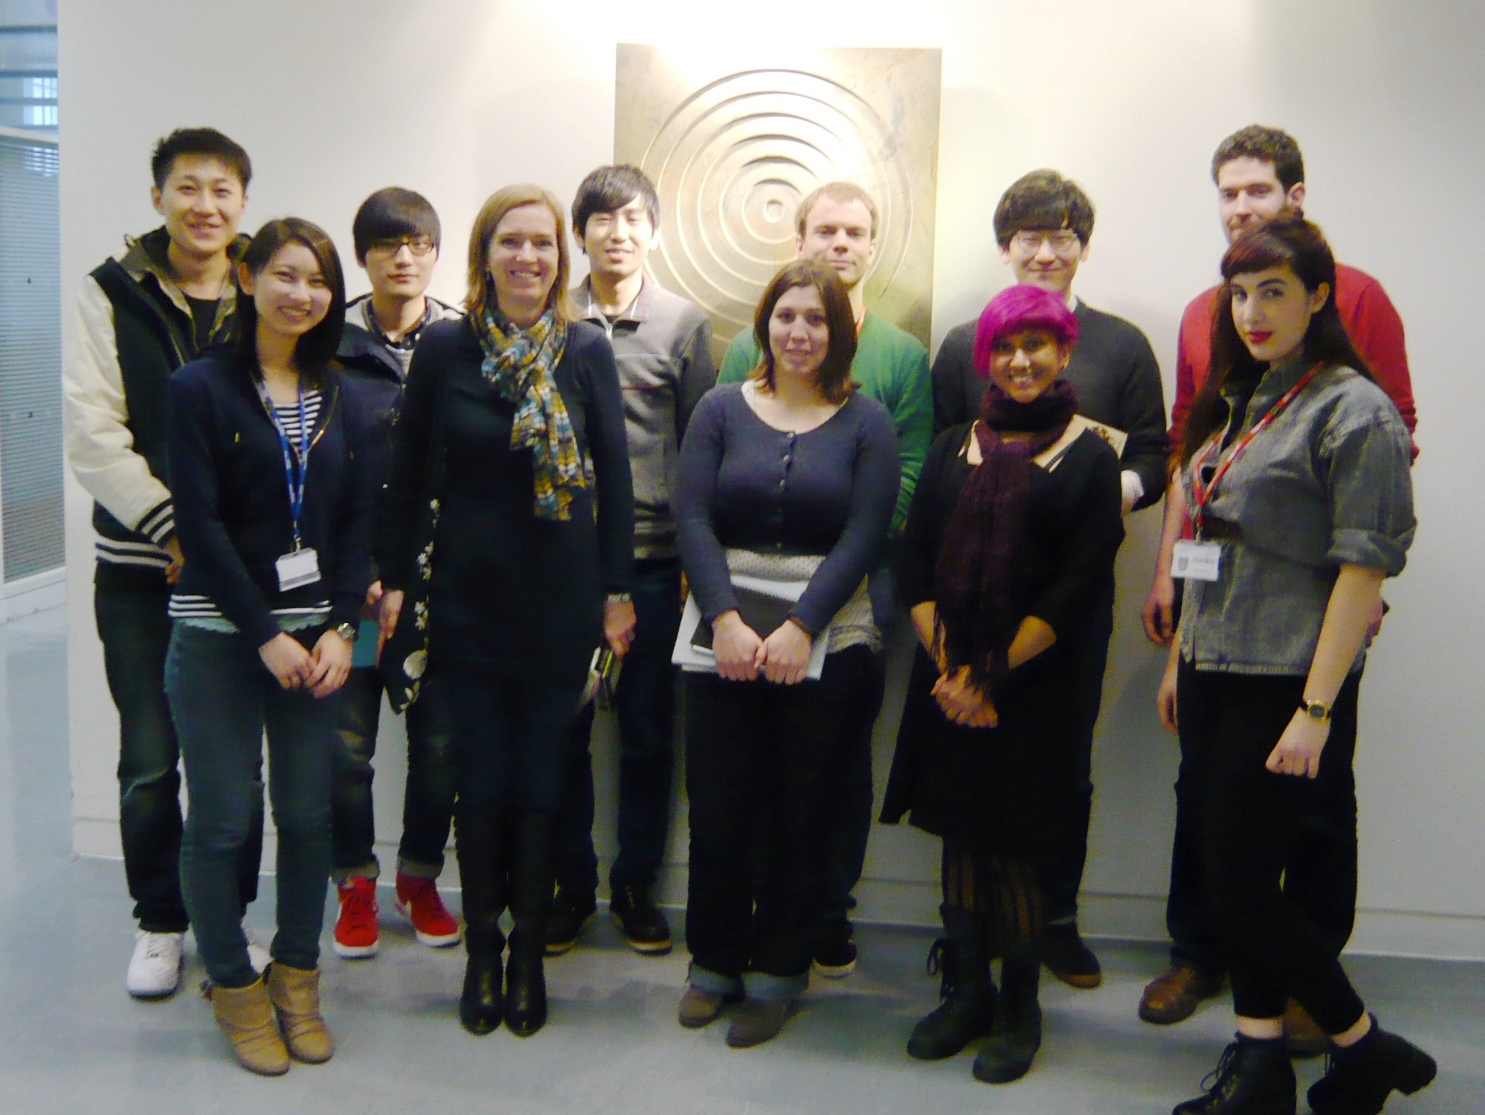 Research Collaboration at Imperial College London